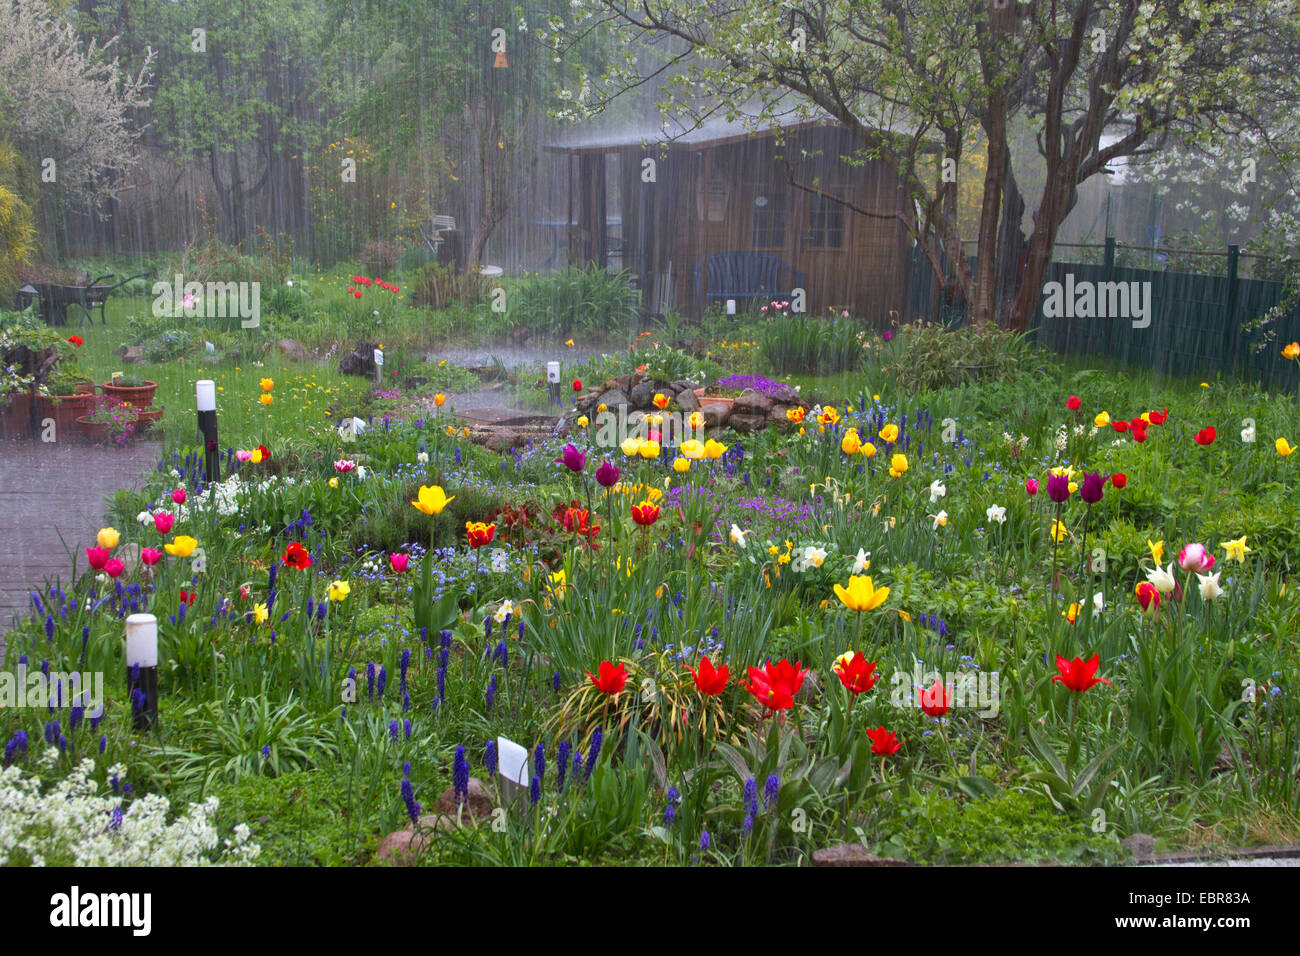 heavy shower with hail in a garden in spring, Germany - Stock Image